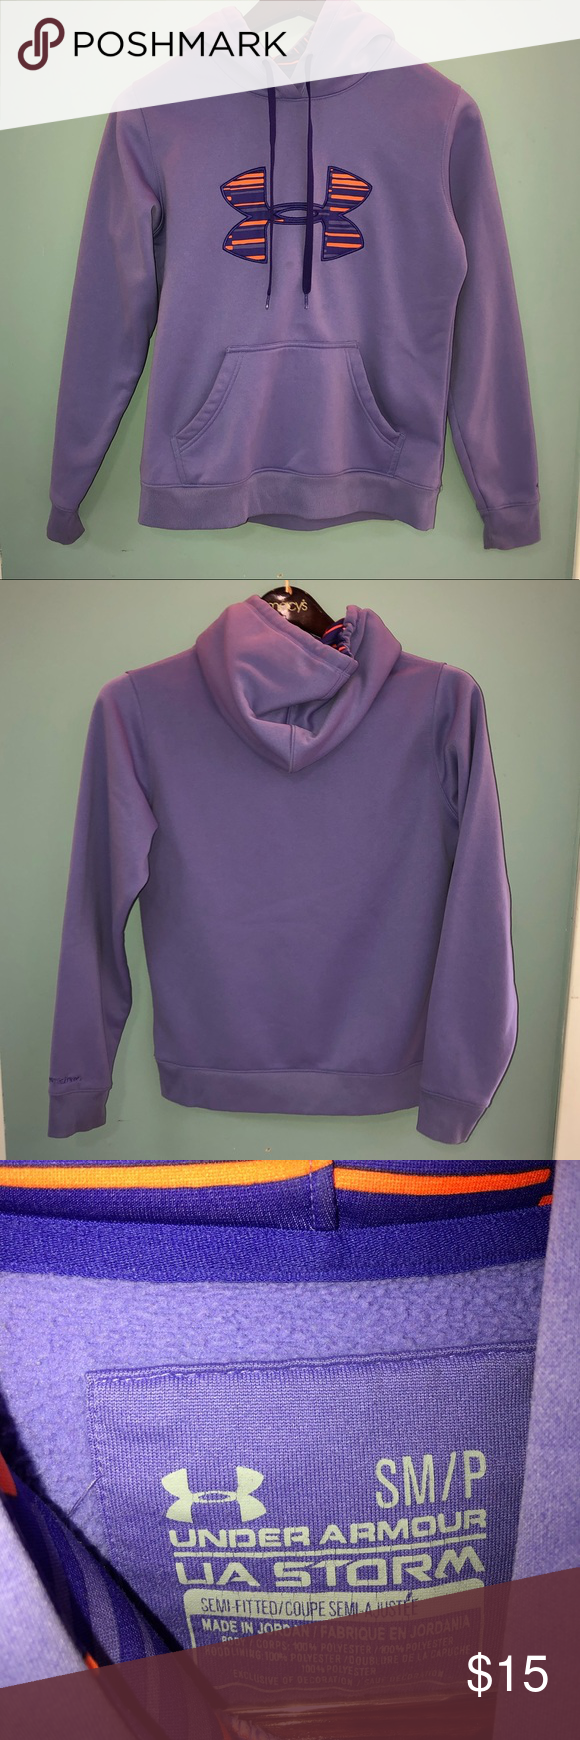 Under Armour Sweatshirt Under Armour Sweatshirt In Great Condition Sporty Cute Under Armour Tops Swe Under Armour Sweatshirt Sweatshirts Under Armour Women [ 1740 x 580 Pixel ]